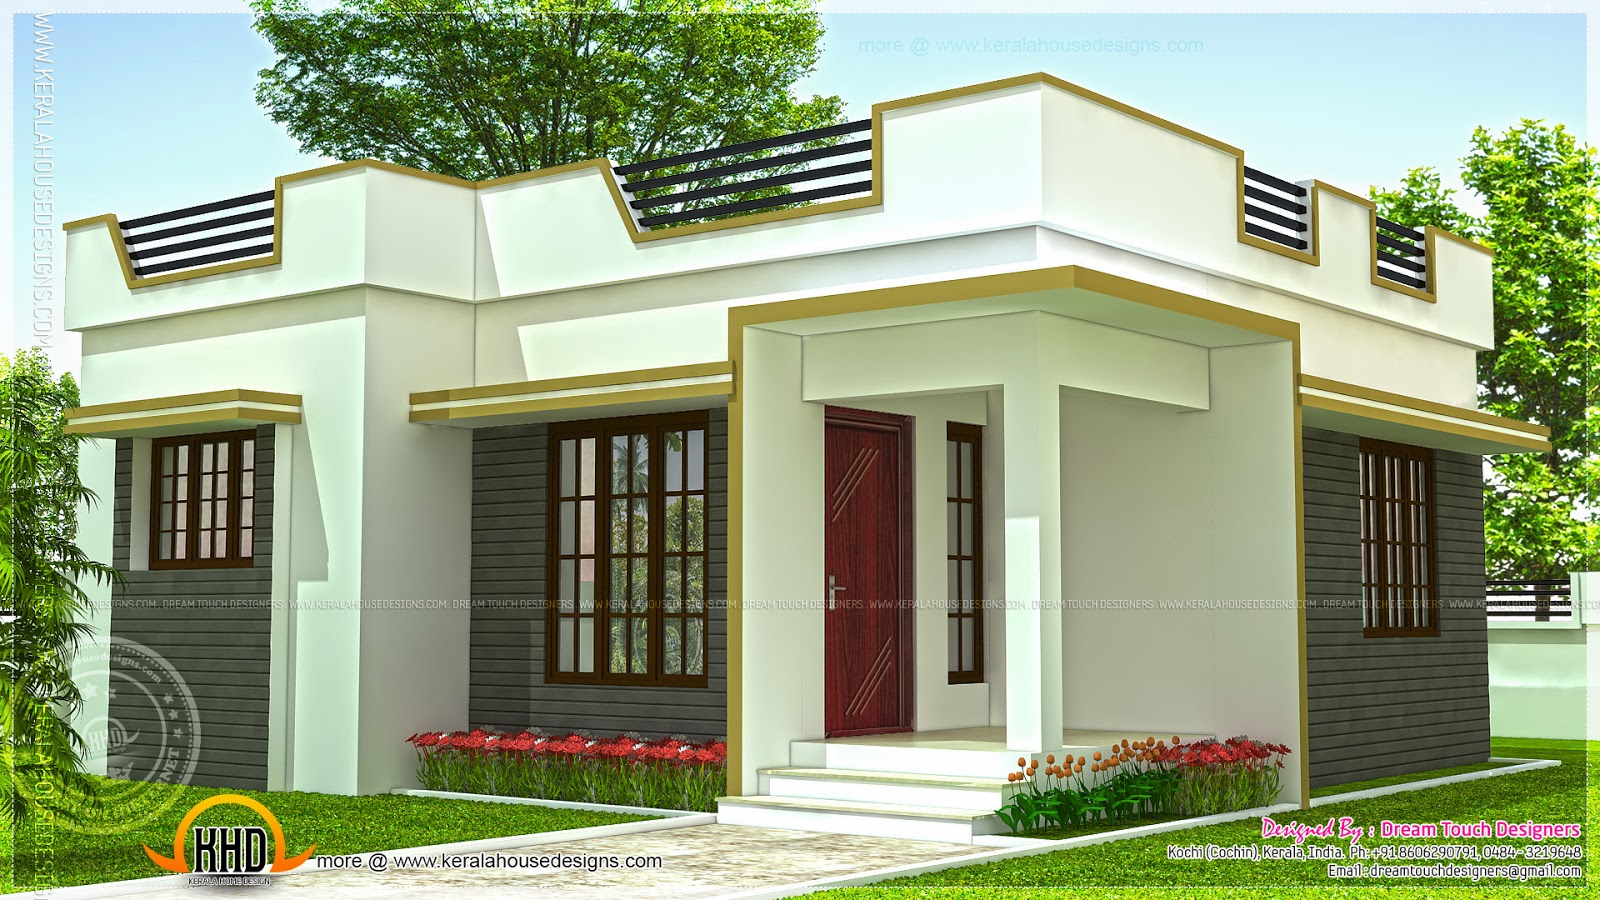 Kerala beautiful houses inside small house plans kerala - Beautiful front designs of homes ...